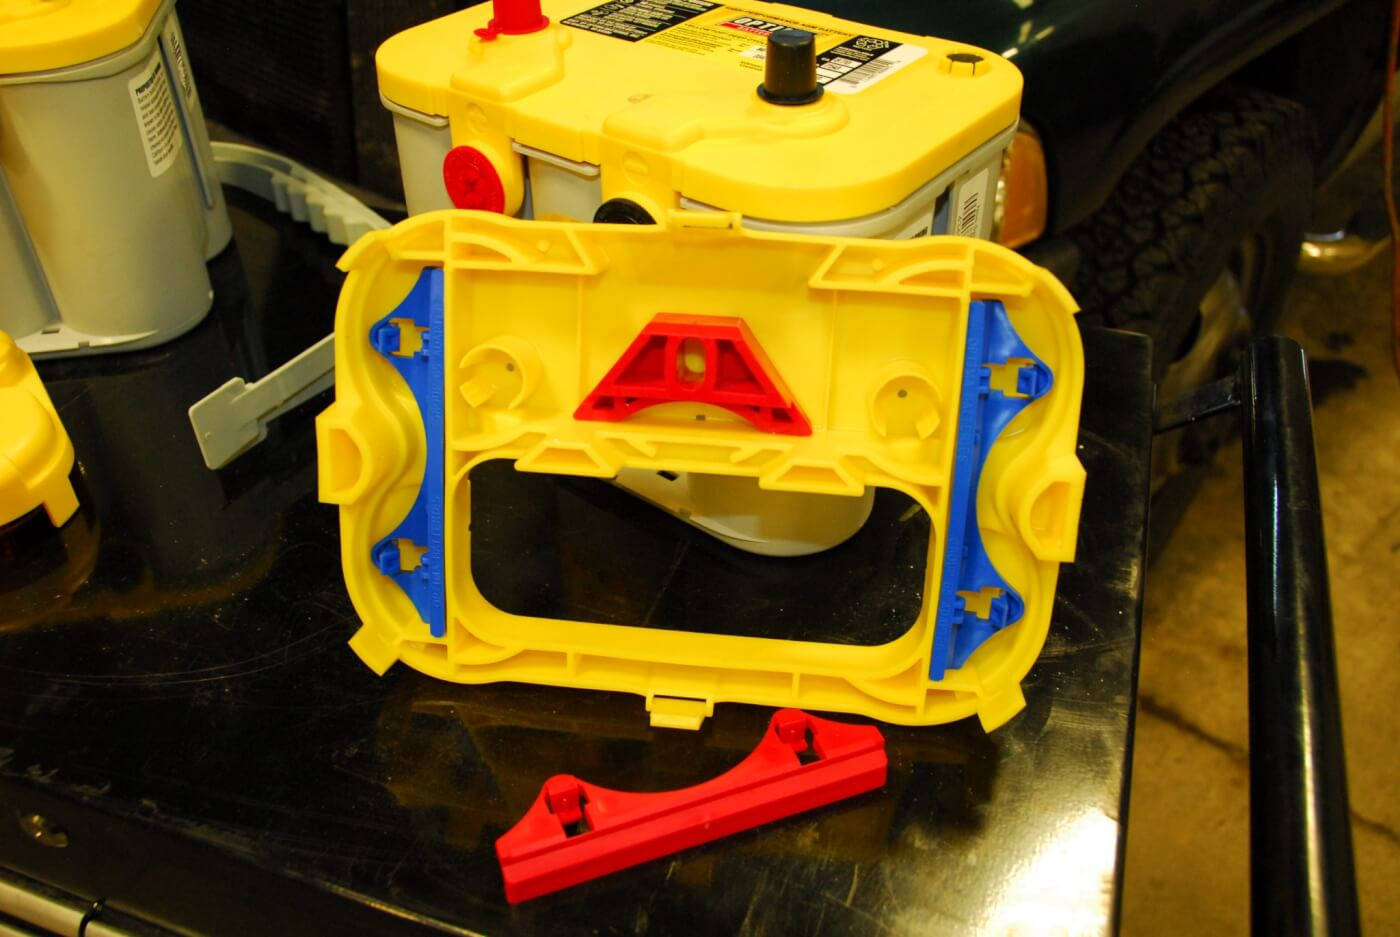 2. Inside the spacer/case are plastic adaptors that are designed to replace the factory bolt-down base clamps. They provide increased clamping force to secure the battery in place and are made to fit the unique shape of the Optima battery case.